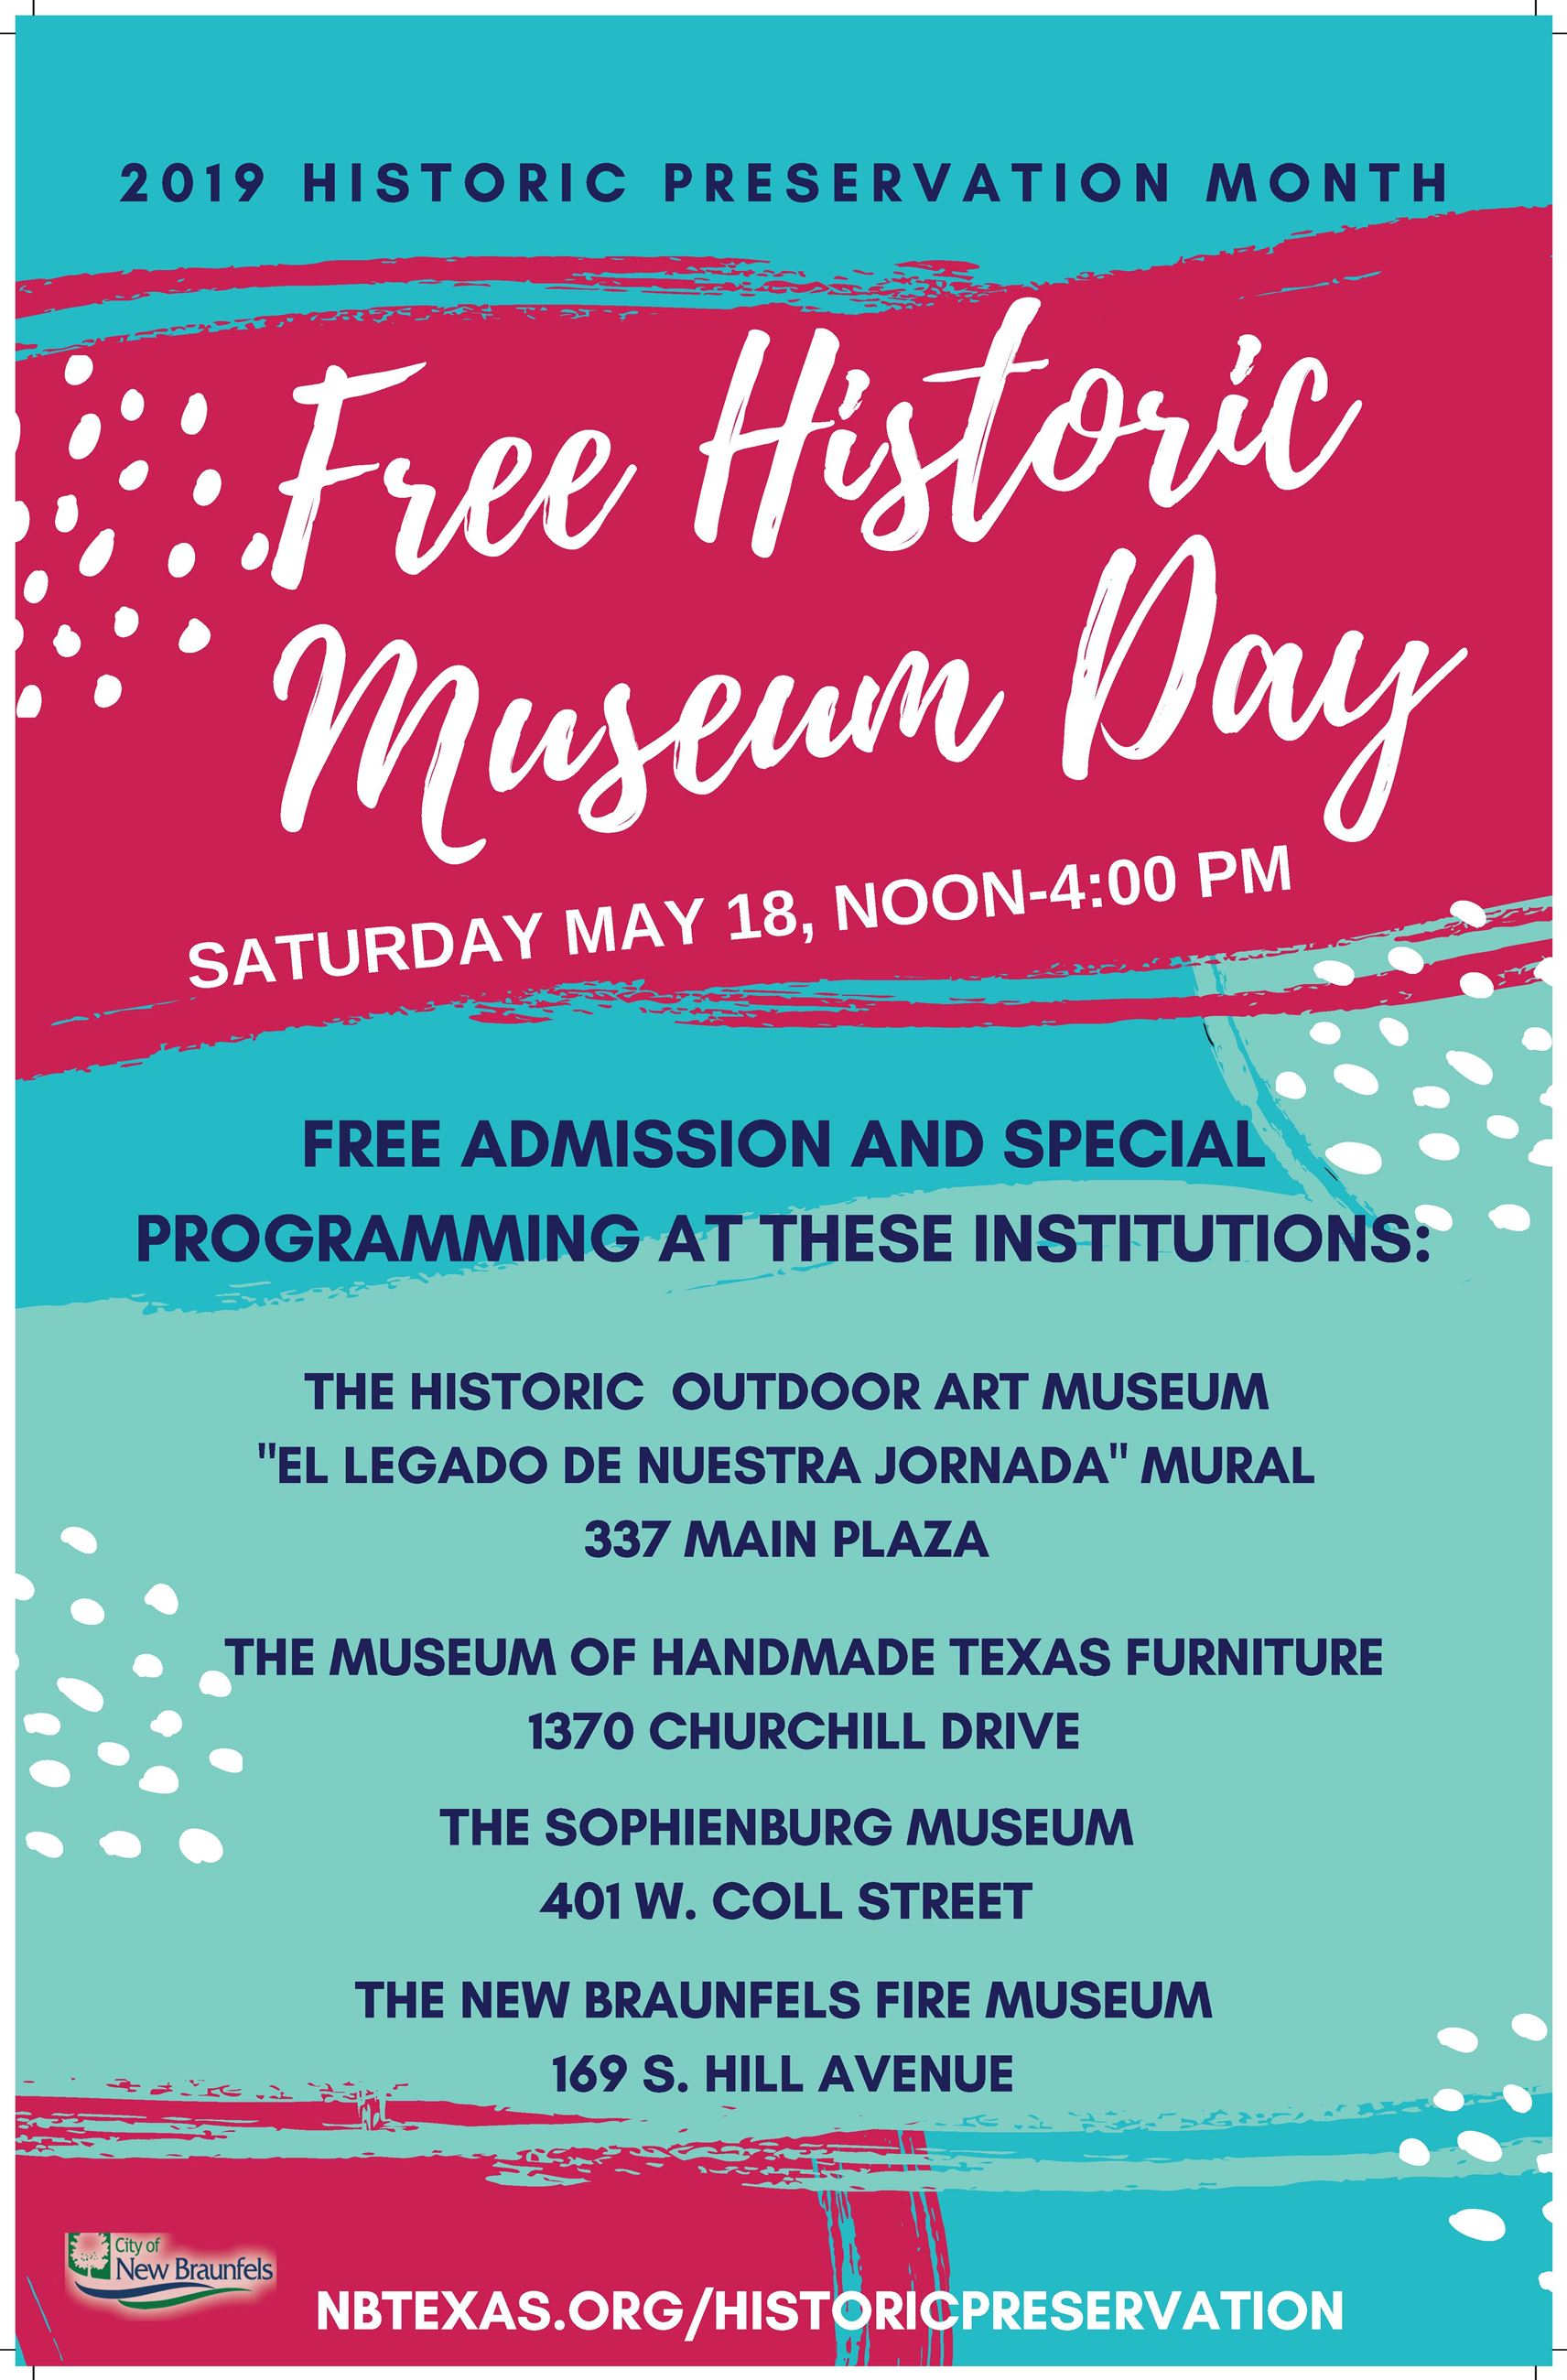 A brightly colored poster with information about free museum day